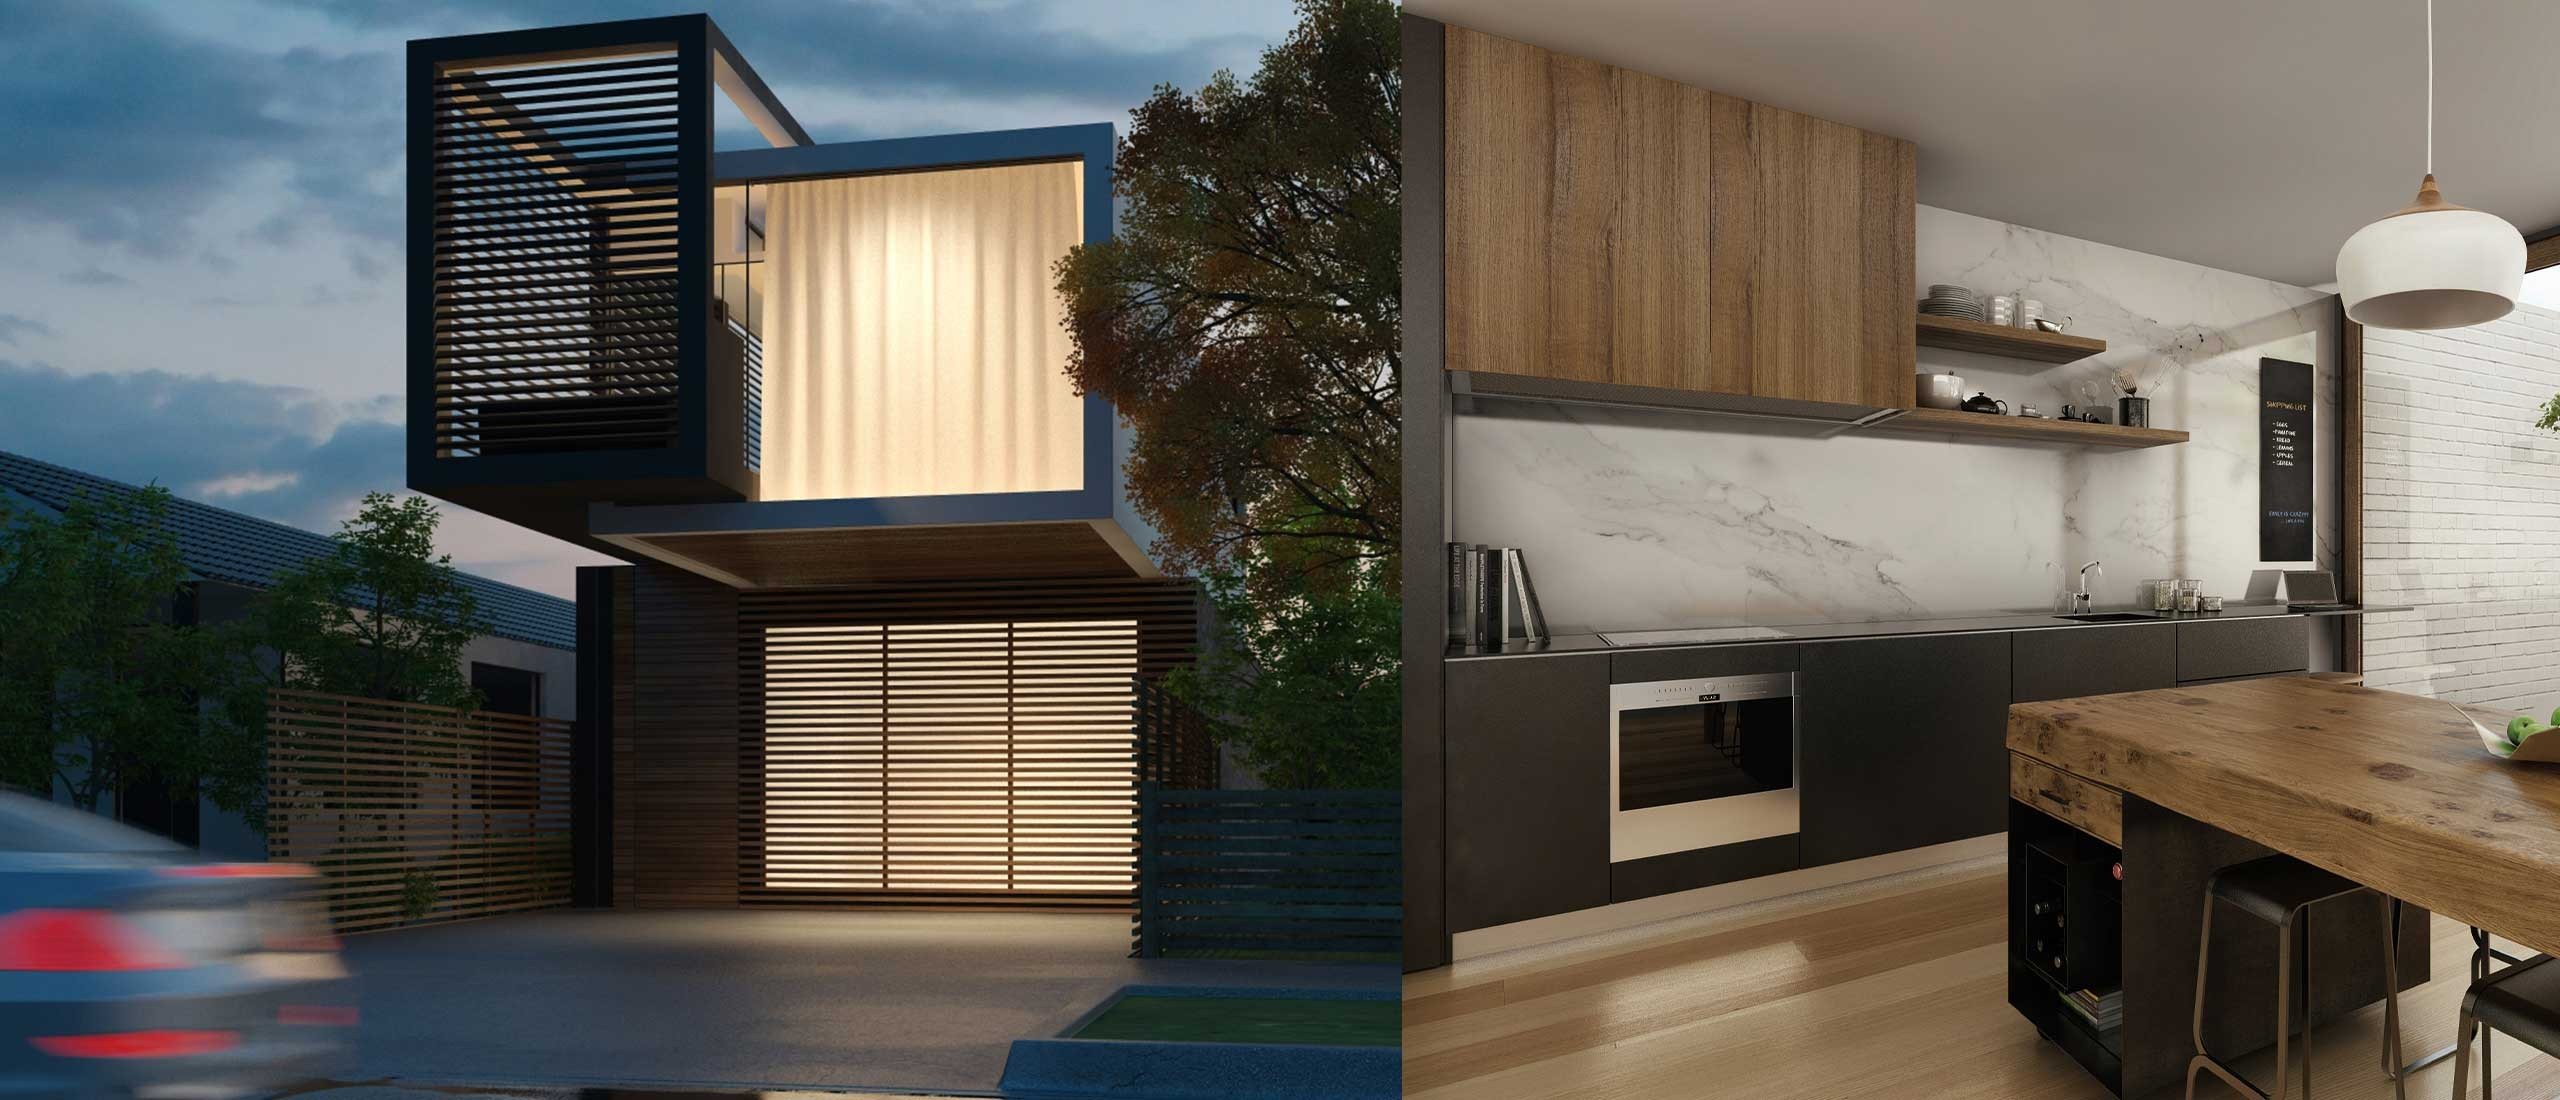 Narrow block house designs melbourne 28 images narrow for Home designs for narrow blocks